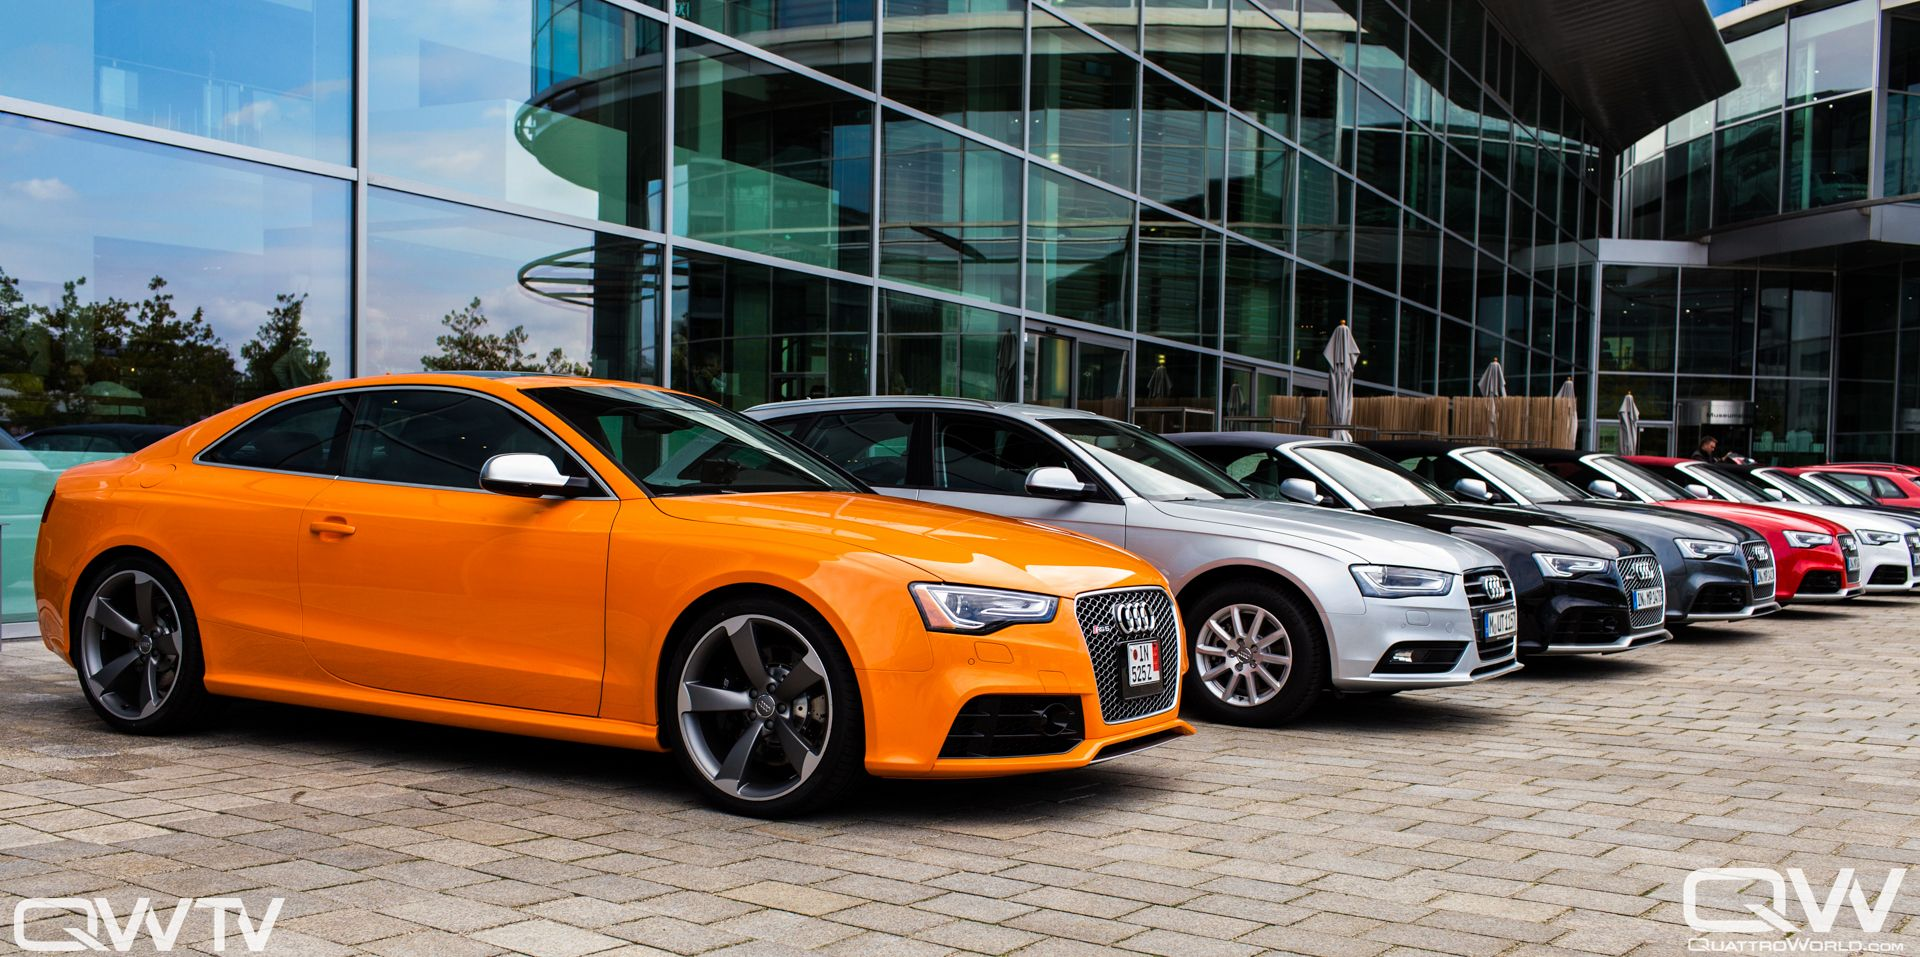 Solar Orange RS And European Delivery QuattroWorld Audi A - Audi european delivery